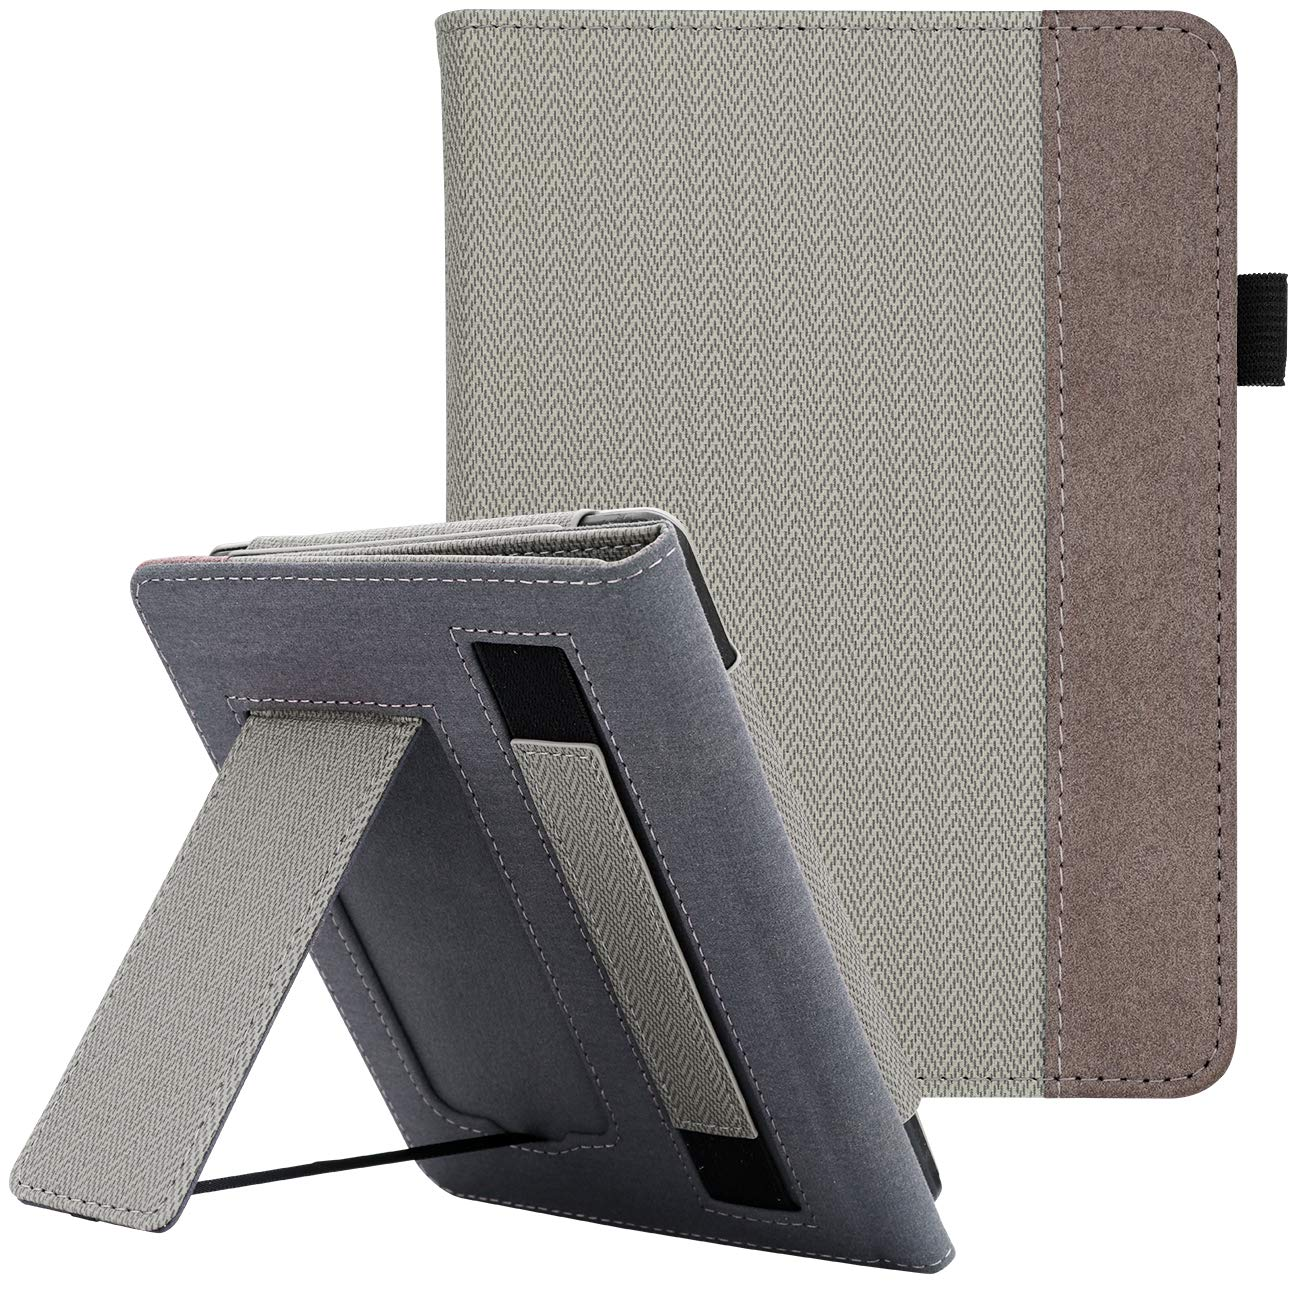 WALNEW Stand Case Fits Kindle Paperwhite 10th Generation 2018 PU Leather Case Smart Protective Cover with Hand Strap (Gray)